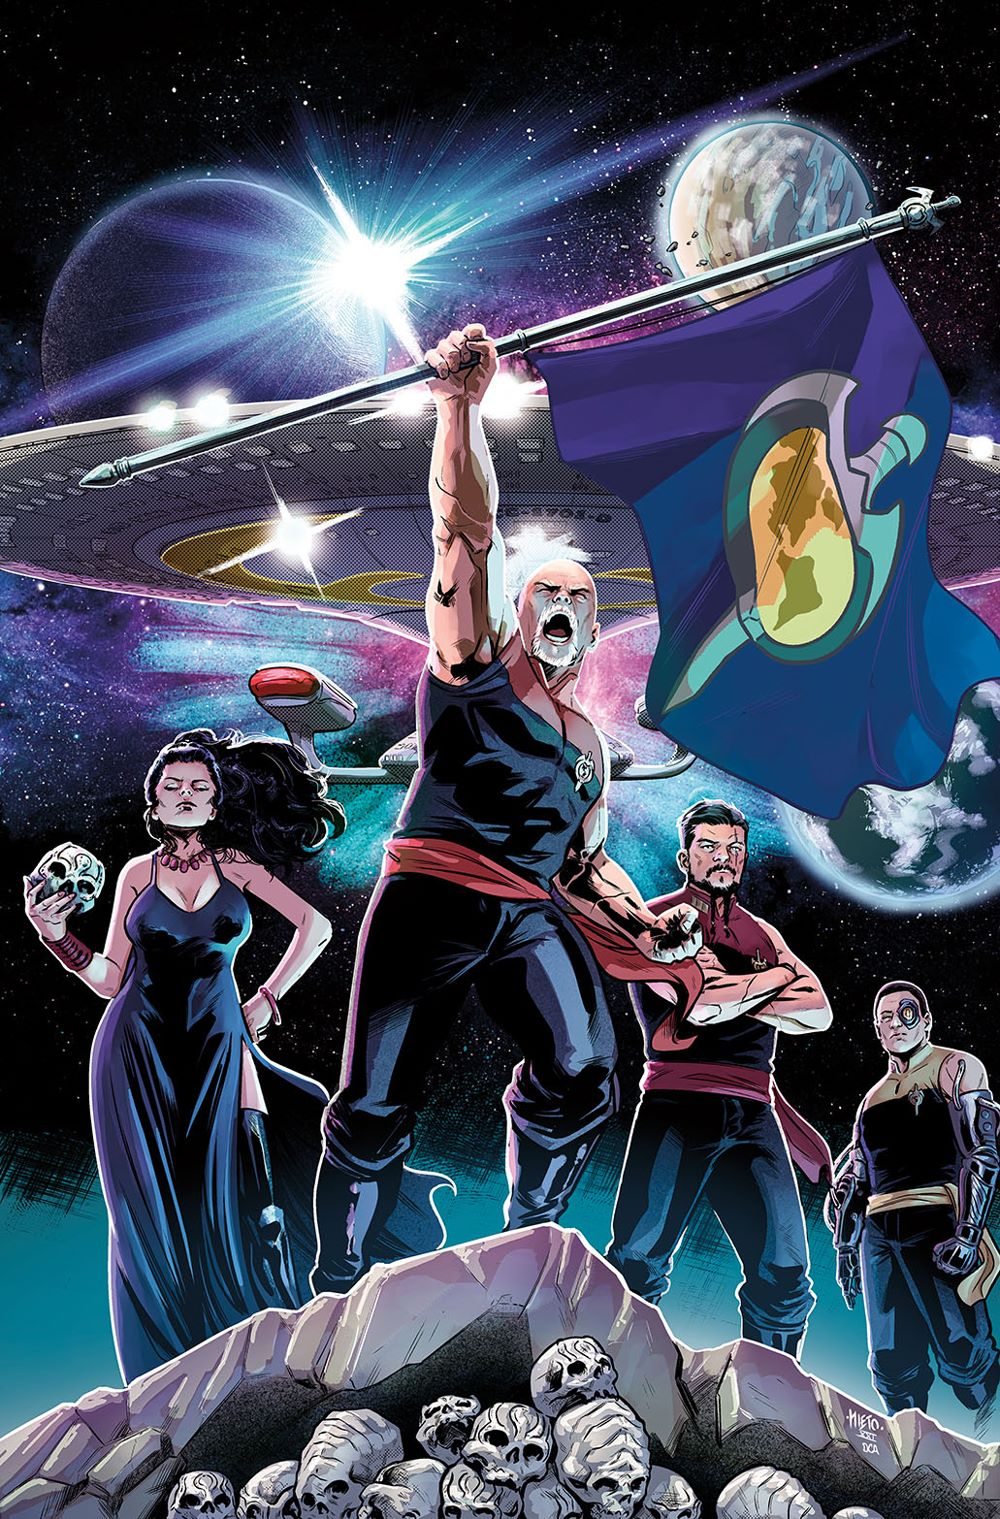 STARTREKTNG_THEMIRRORWARS_ISSUE0_COVER_INKS_RETv2-copy IDW Publishing August 2021 Solicitations